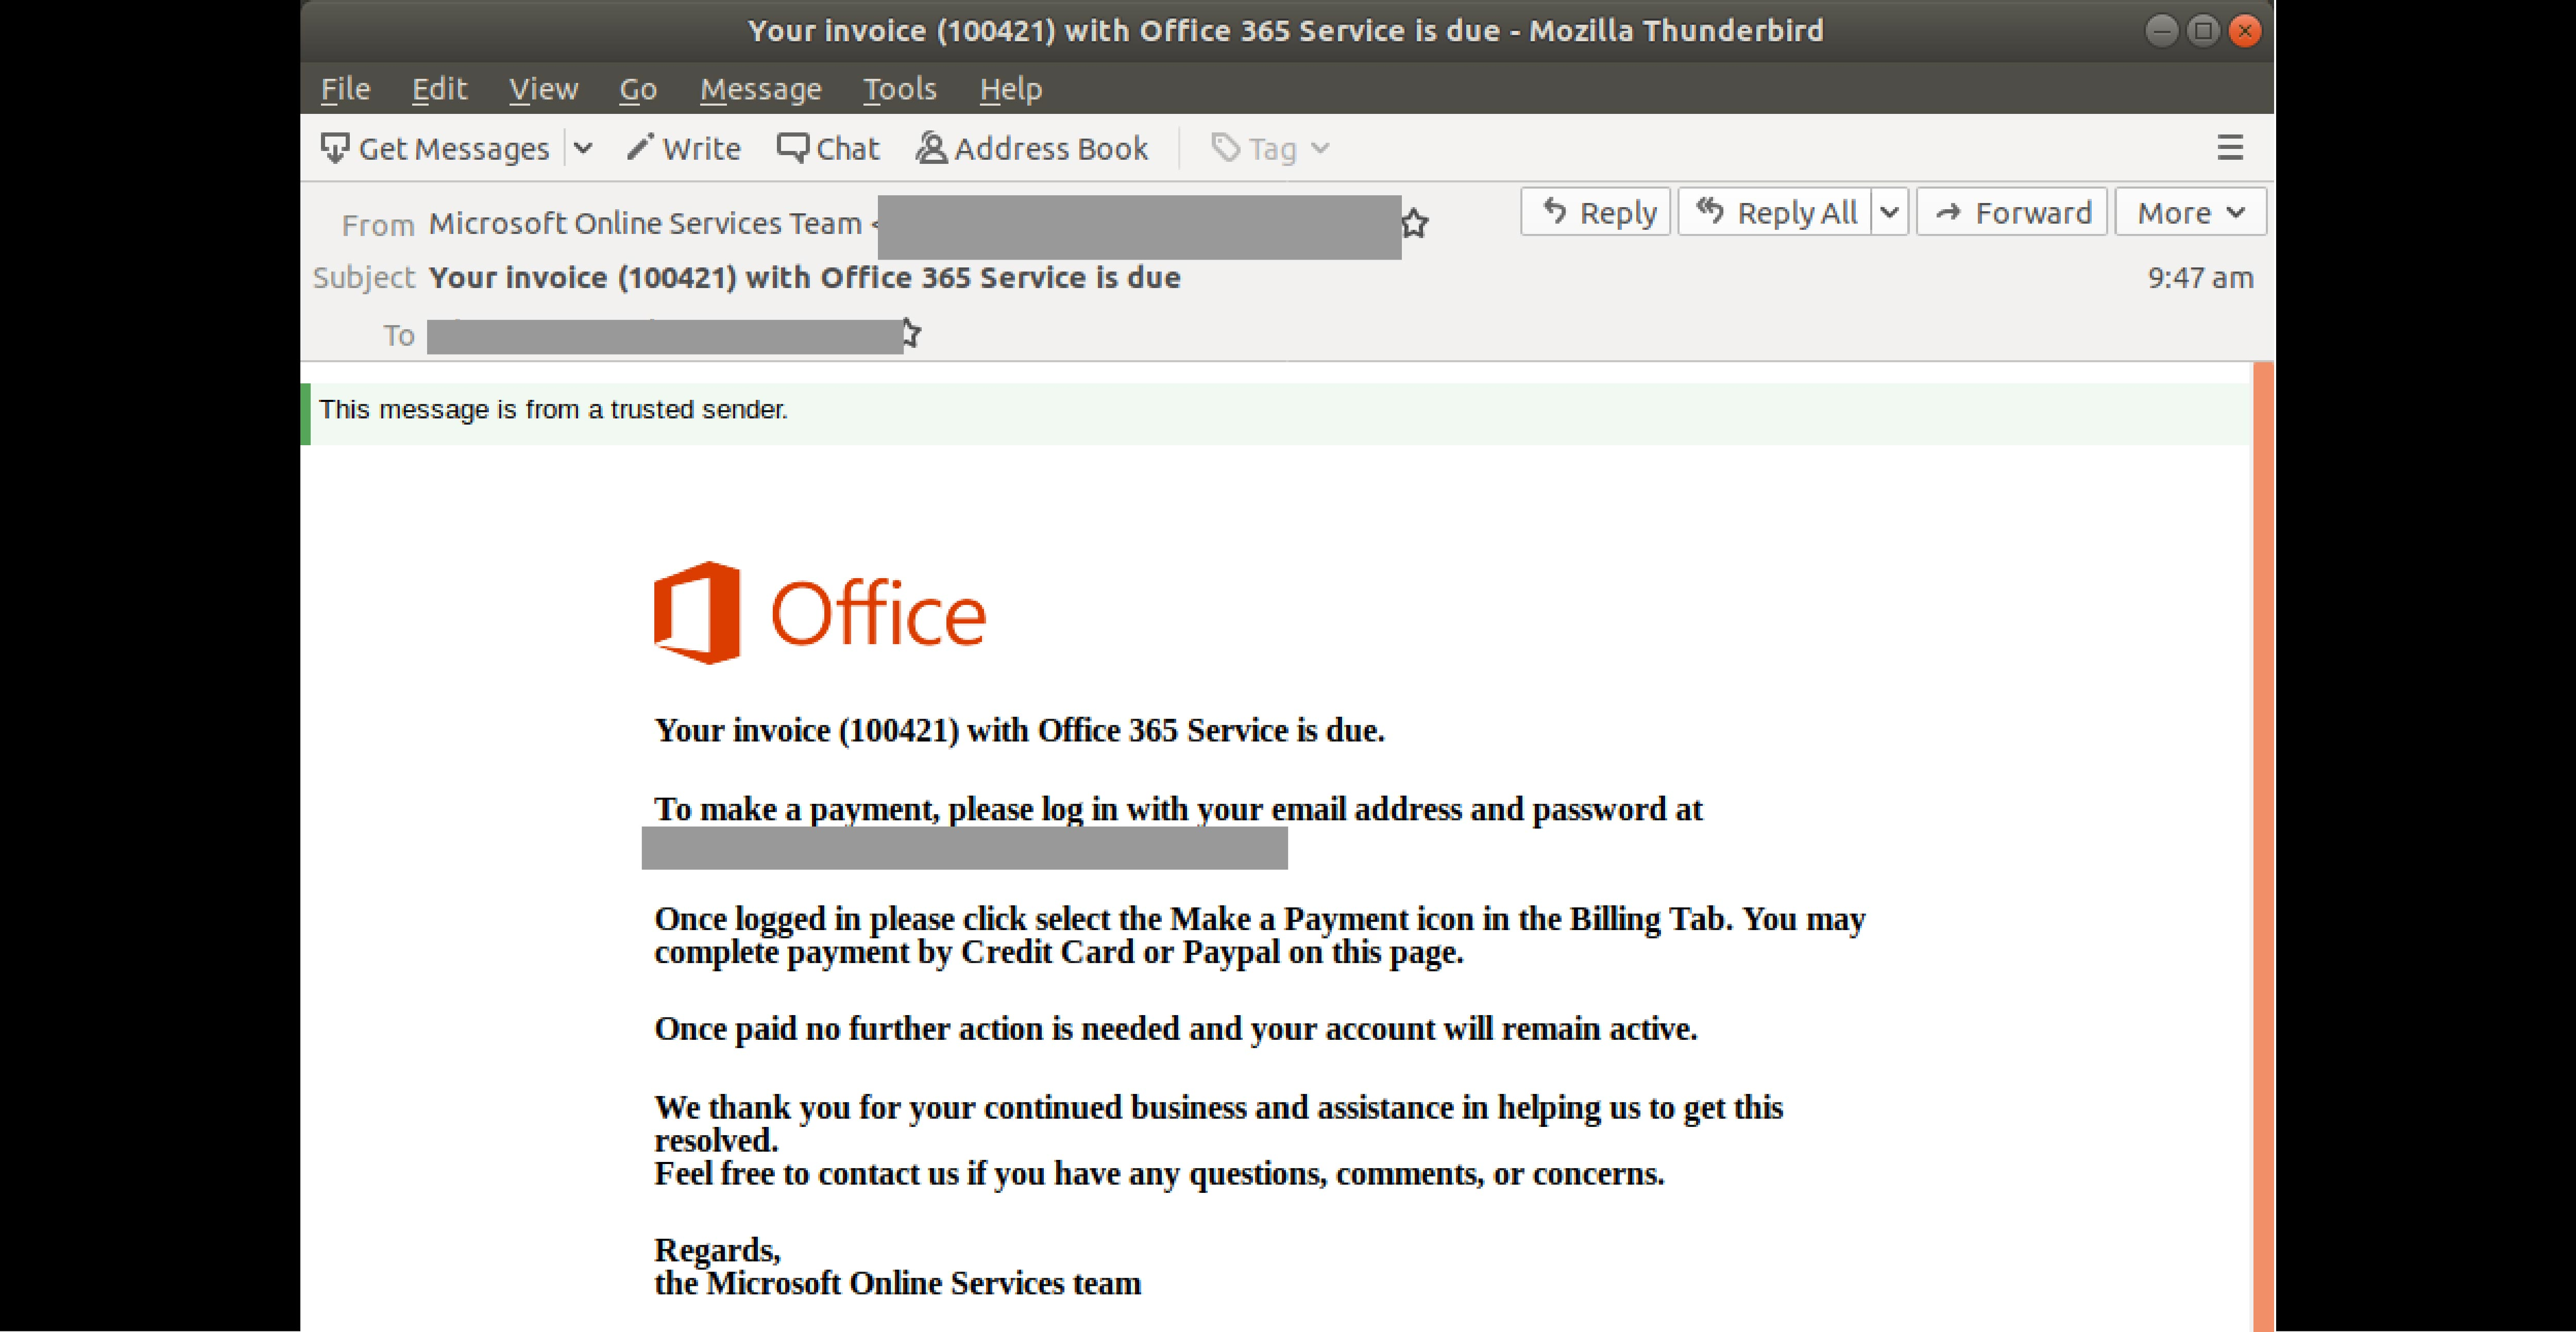 Office 365 invoice_2310 edited